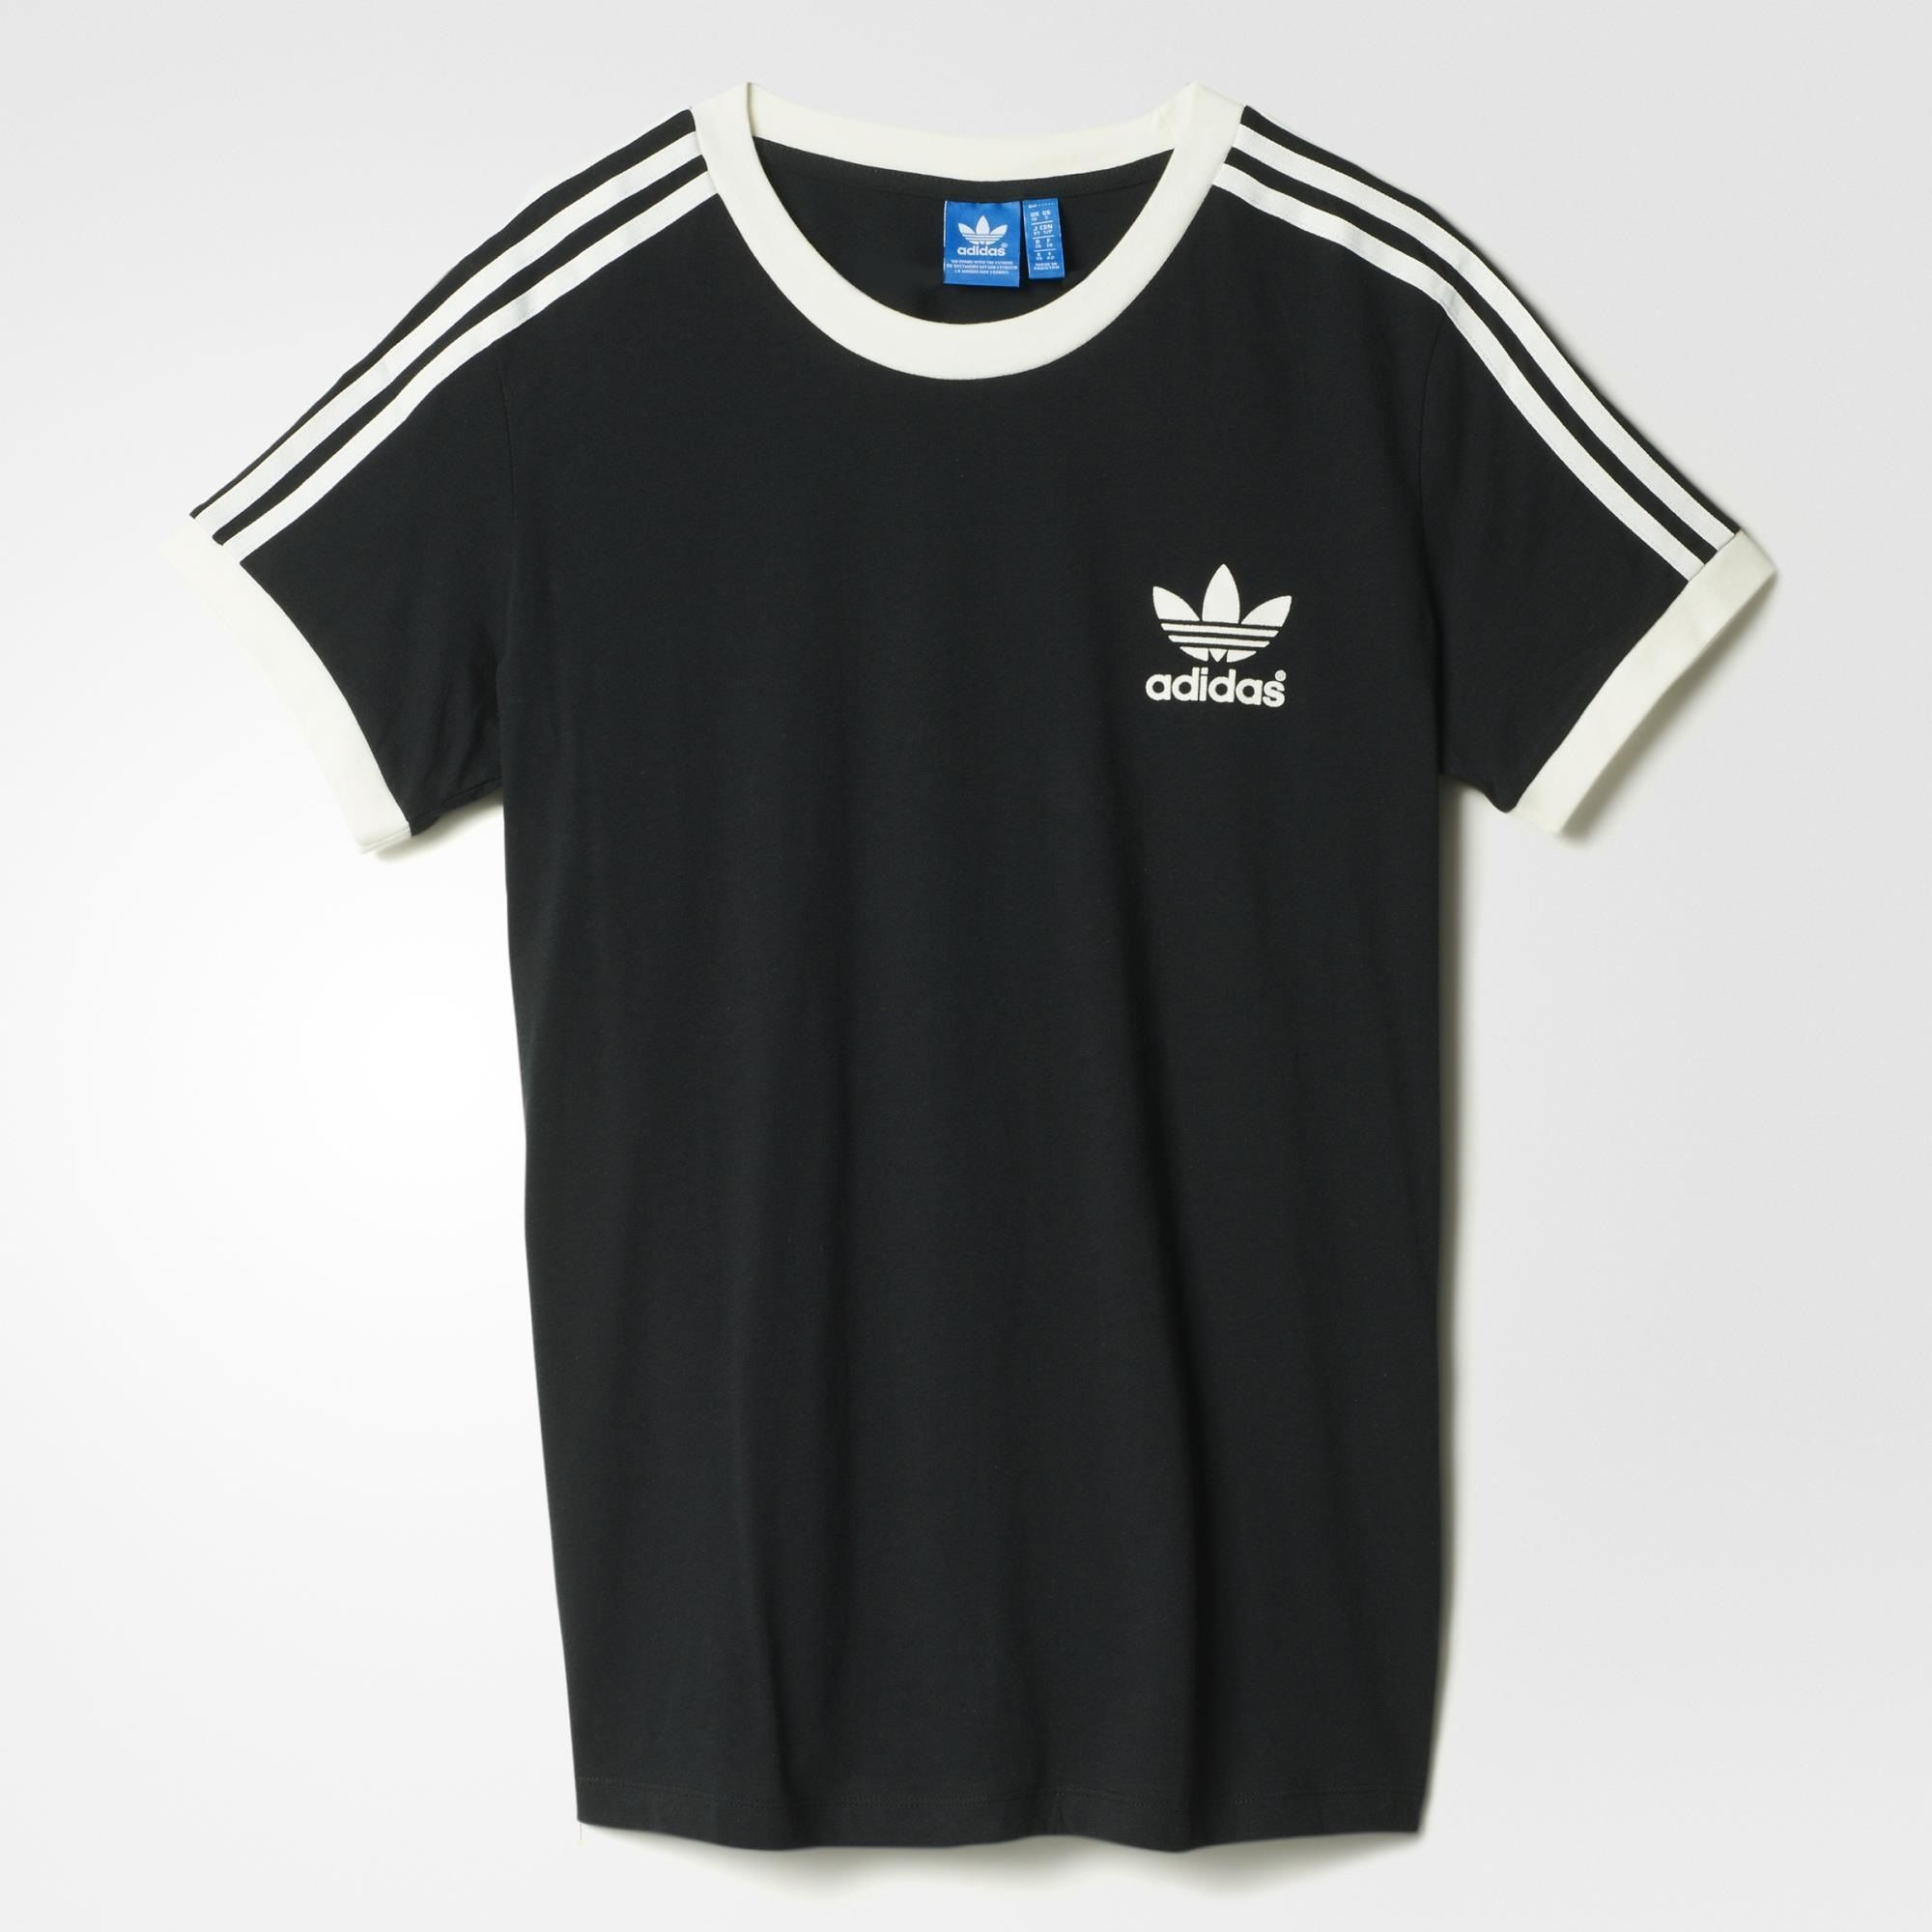 adidas 3-stripes t-shirt noir